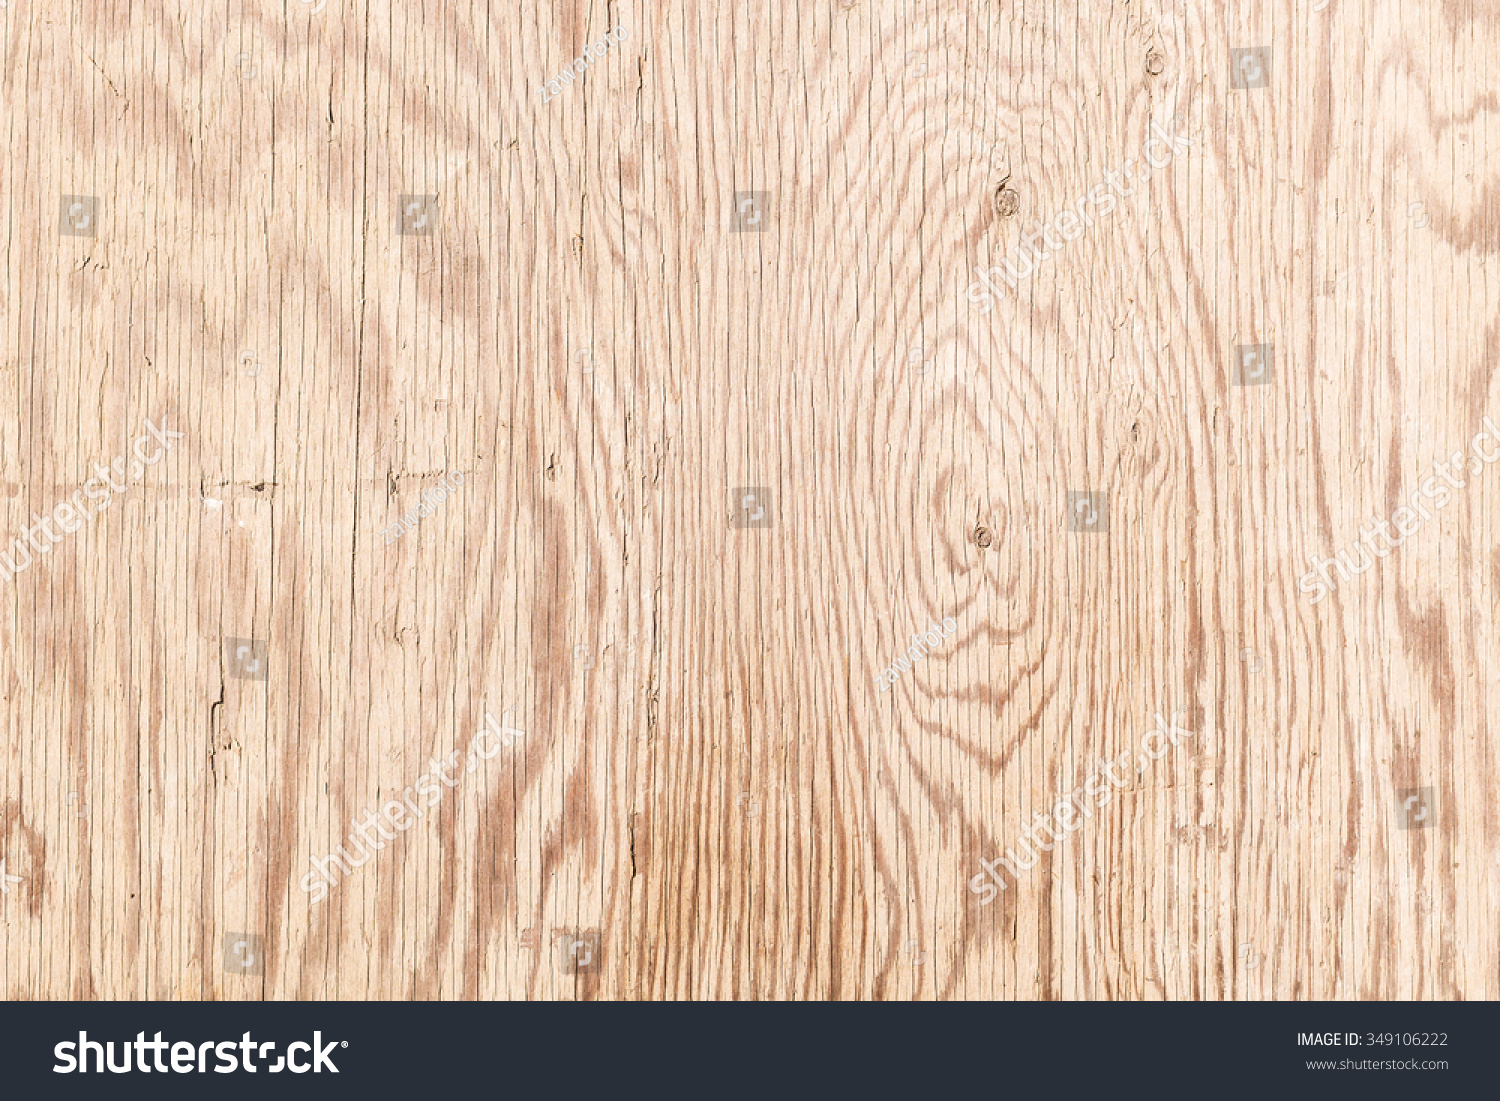 Line Texture Background : Nature old wooden line texture brown stock photo